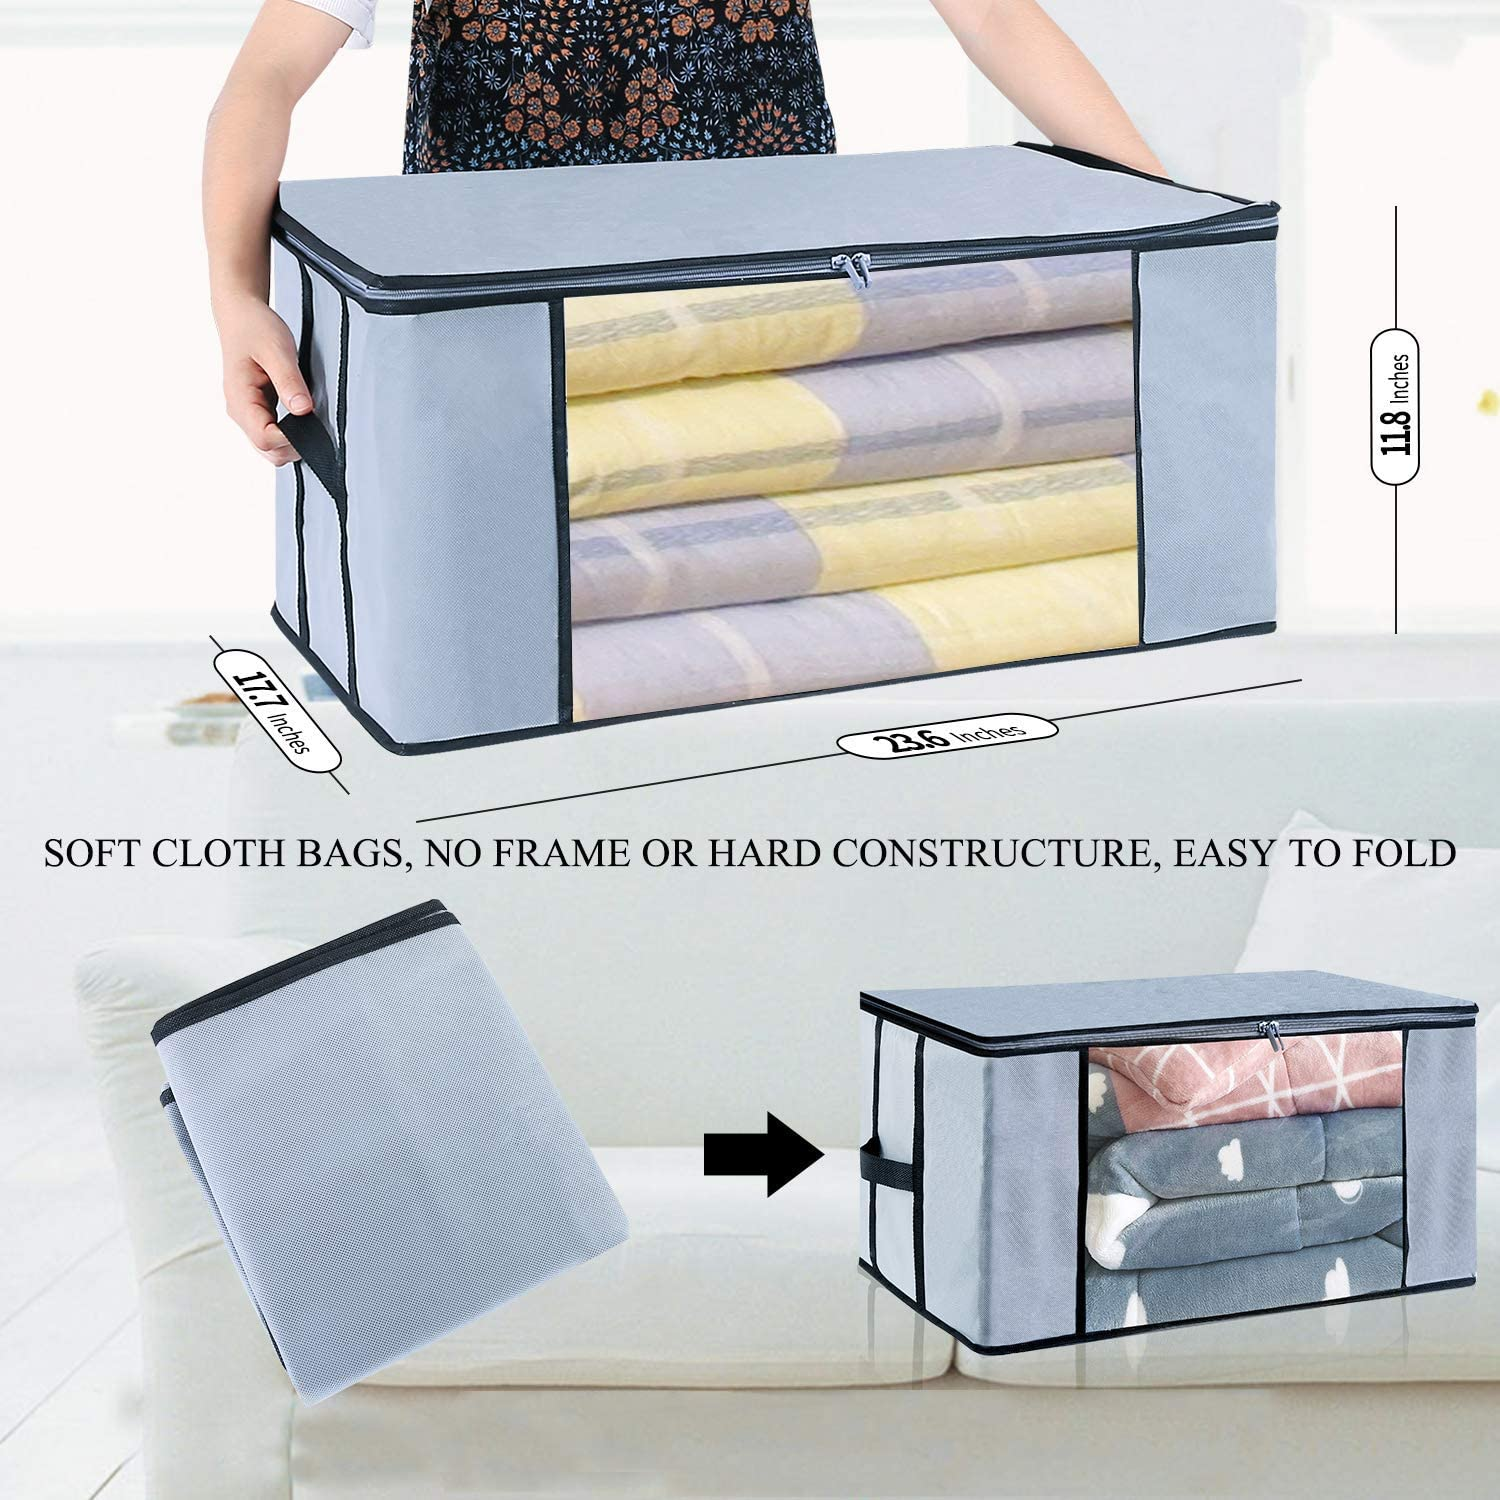 Foldable Clothes Storage Organizer Containers Bags Breathable Material Closet Organization with Clear Window Pack of 3 Seckon Zippered Storage Bags Jumbo Size